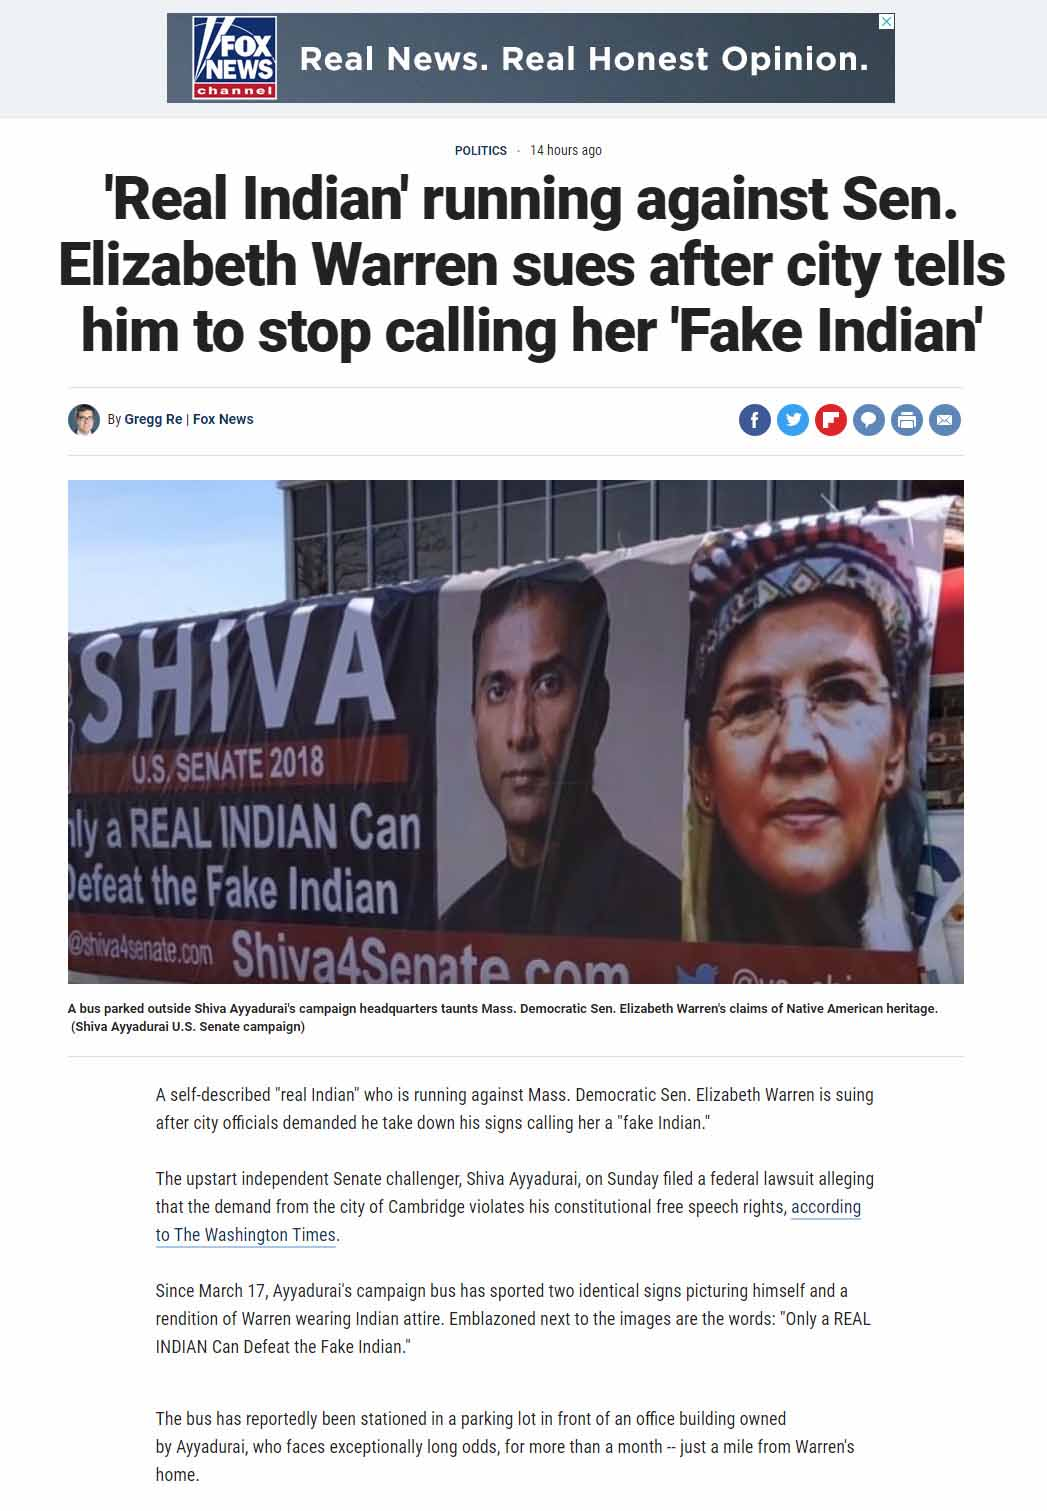 'Real Indian' Running Against Sen. Elizabeth Warren Sues After City Tells Him To Stop Calling Her 'Fake Indian'